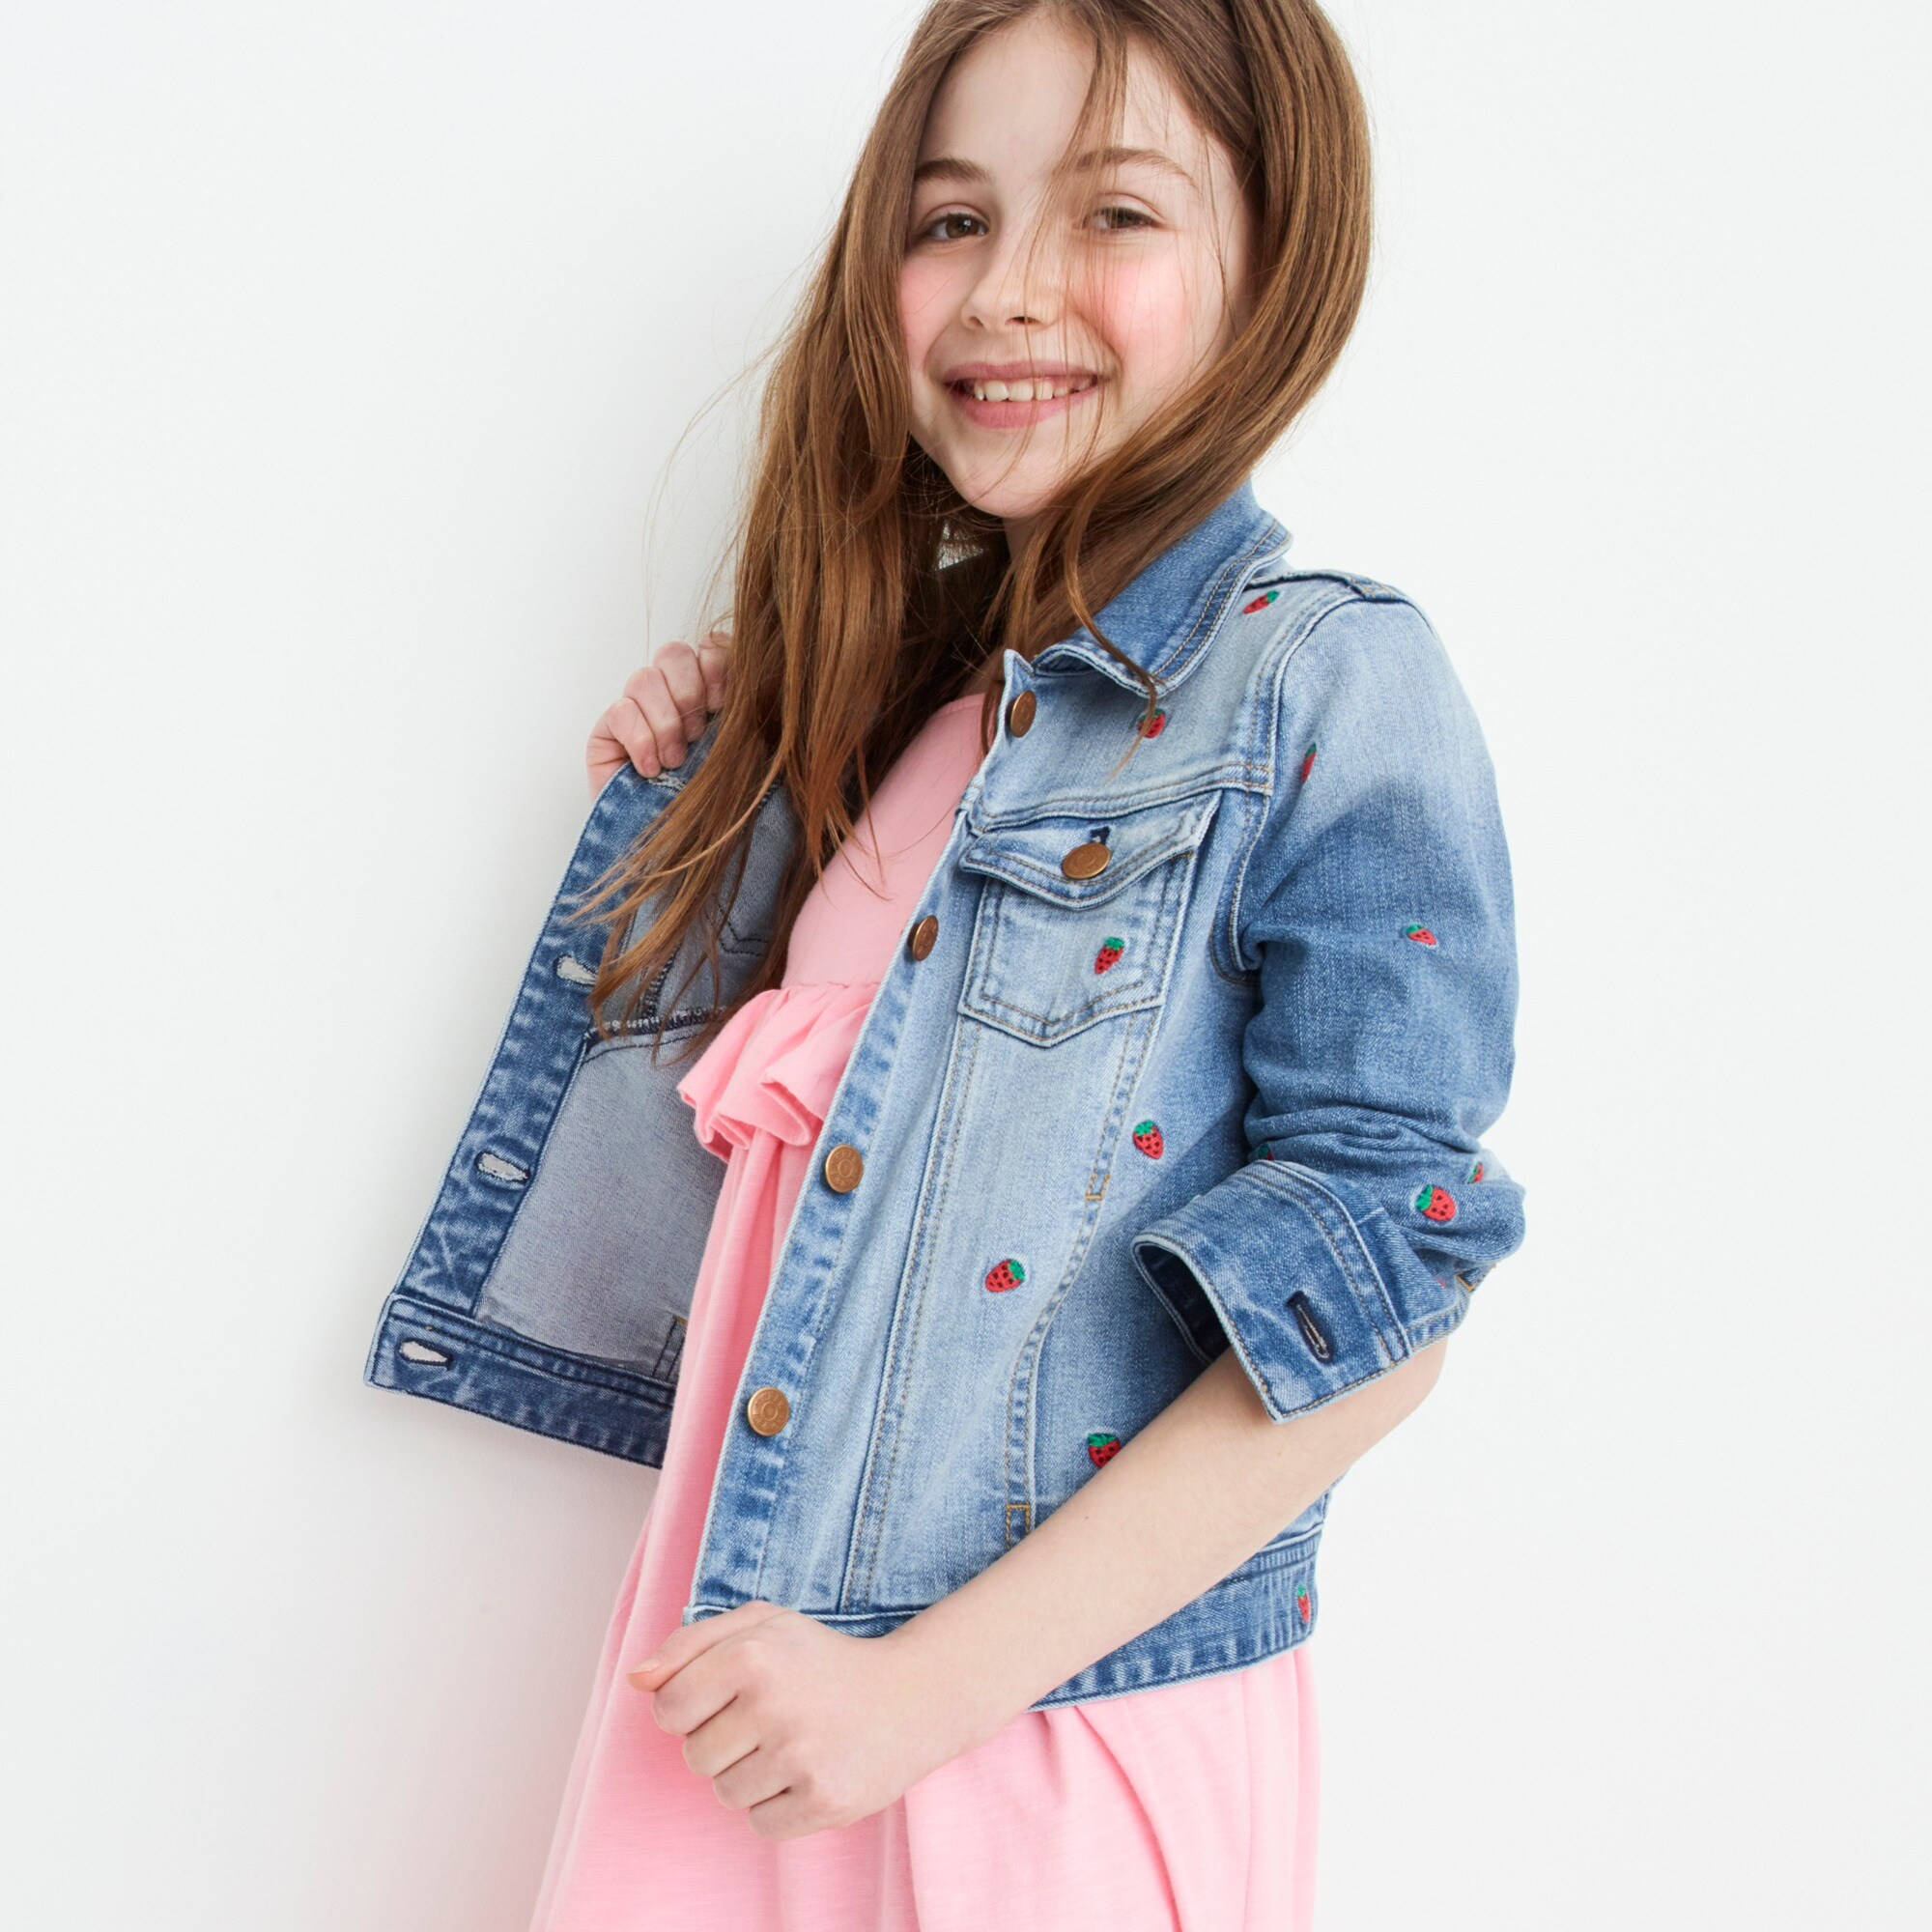 Girls' Madewell X crewcuts strawberry embroidered jean jacket girl denim c